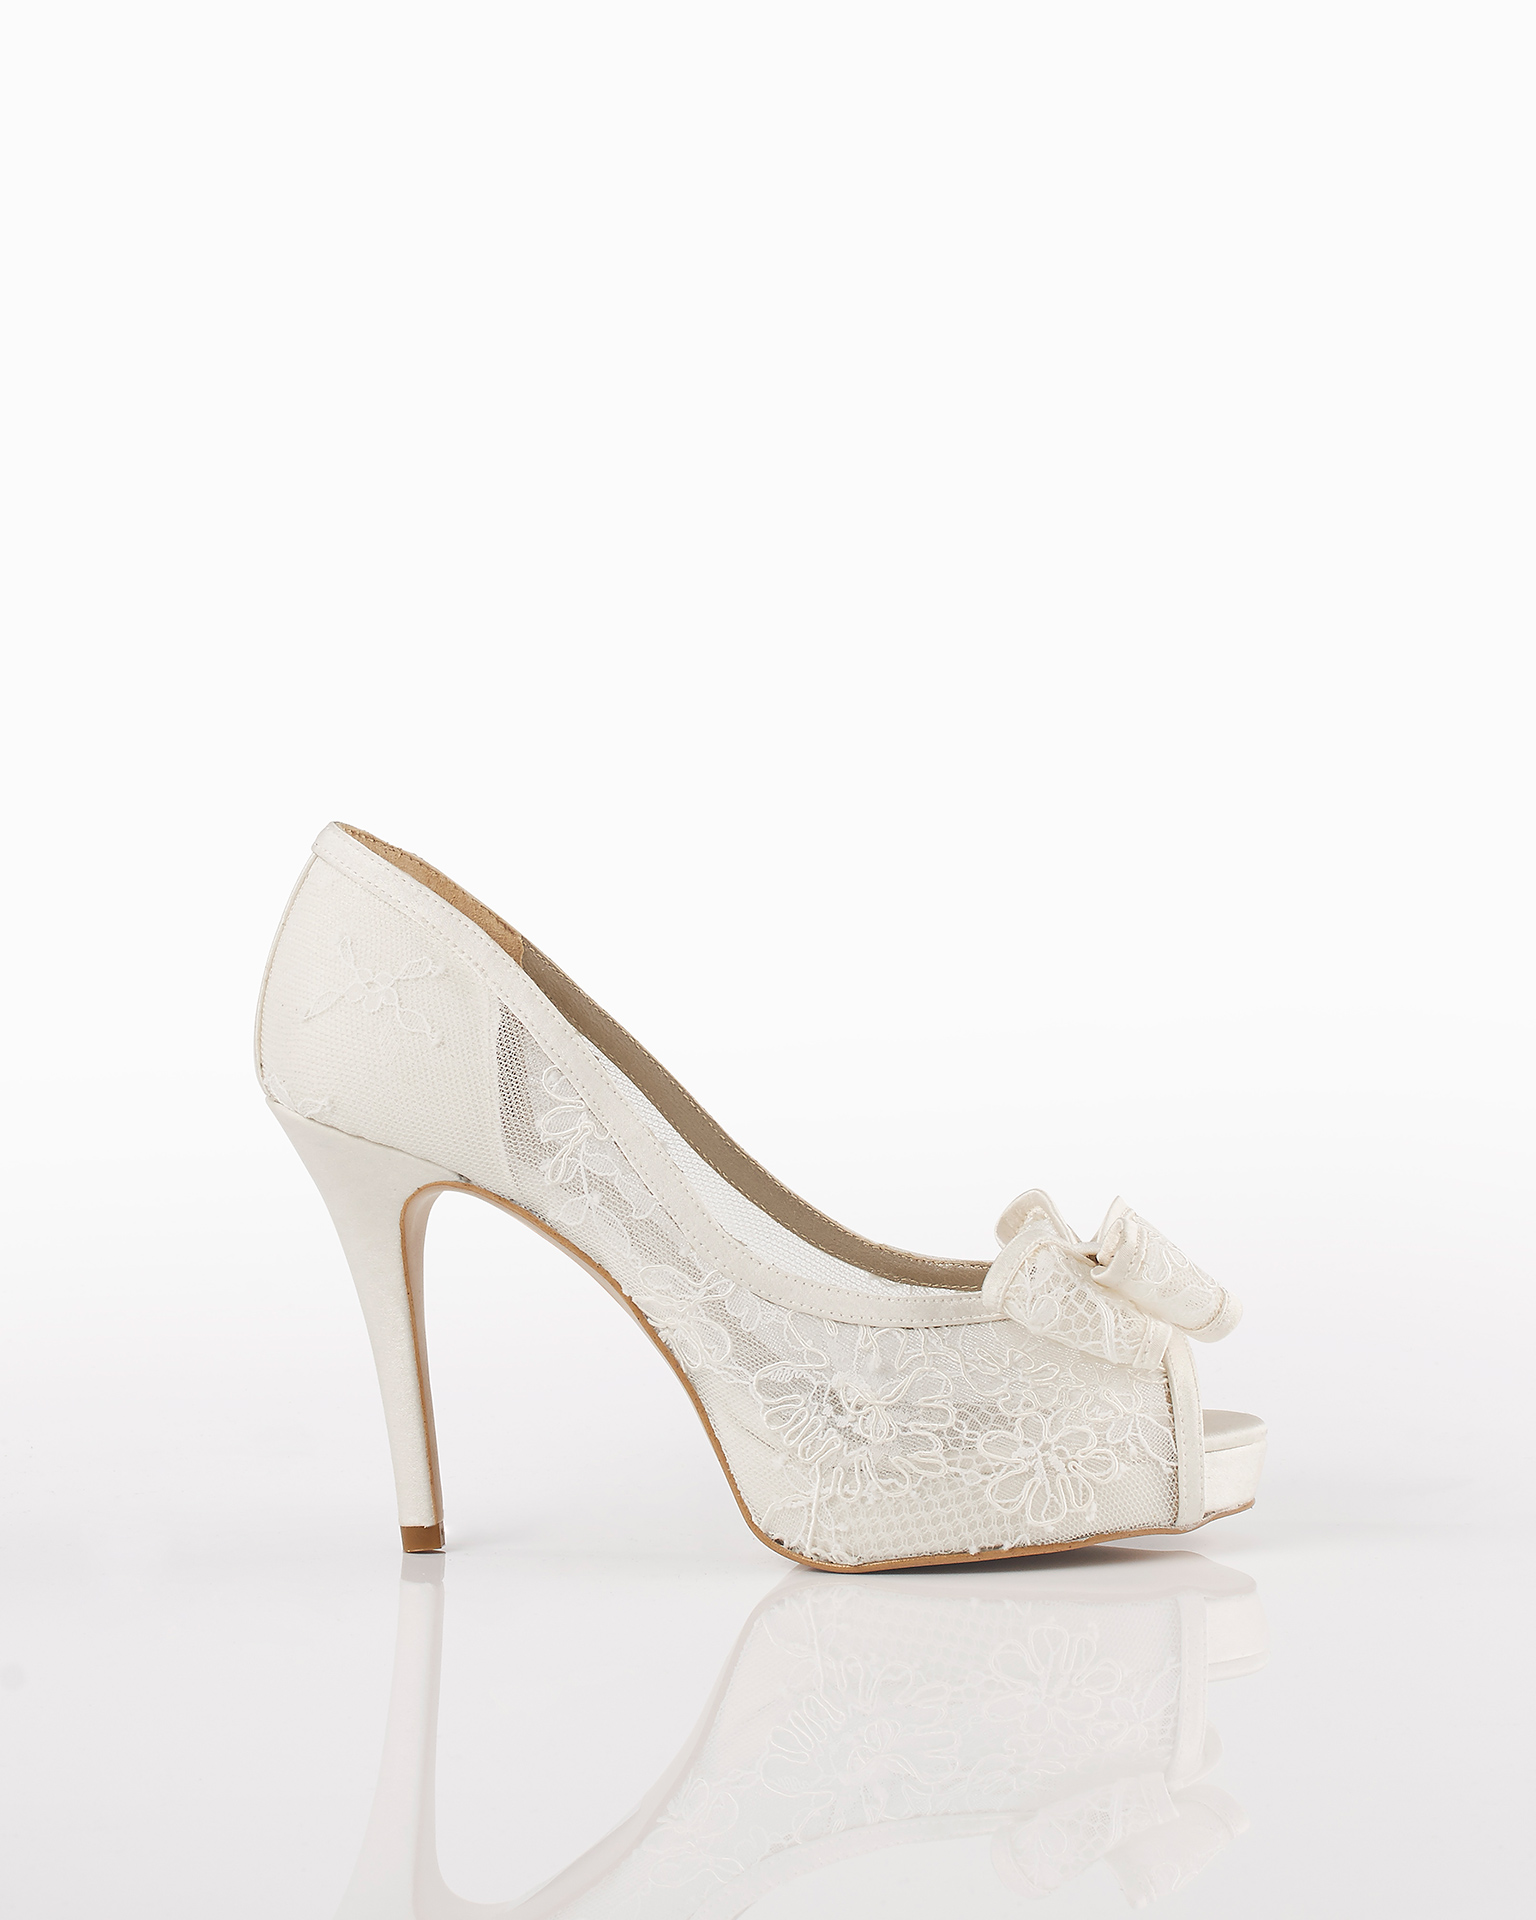 Lace wedding shoes with 90-mm heel, in natural. 2018 AIRE BARCELONA Collection.